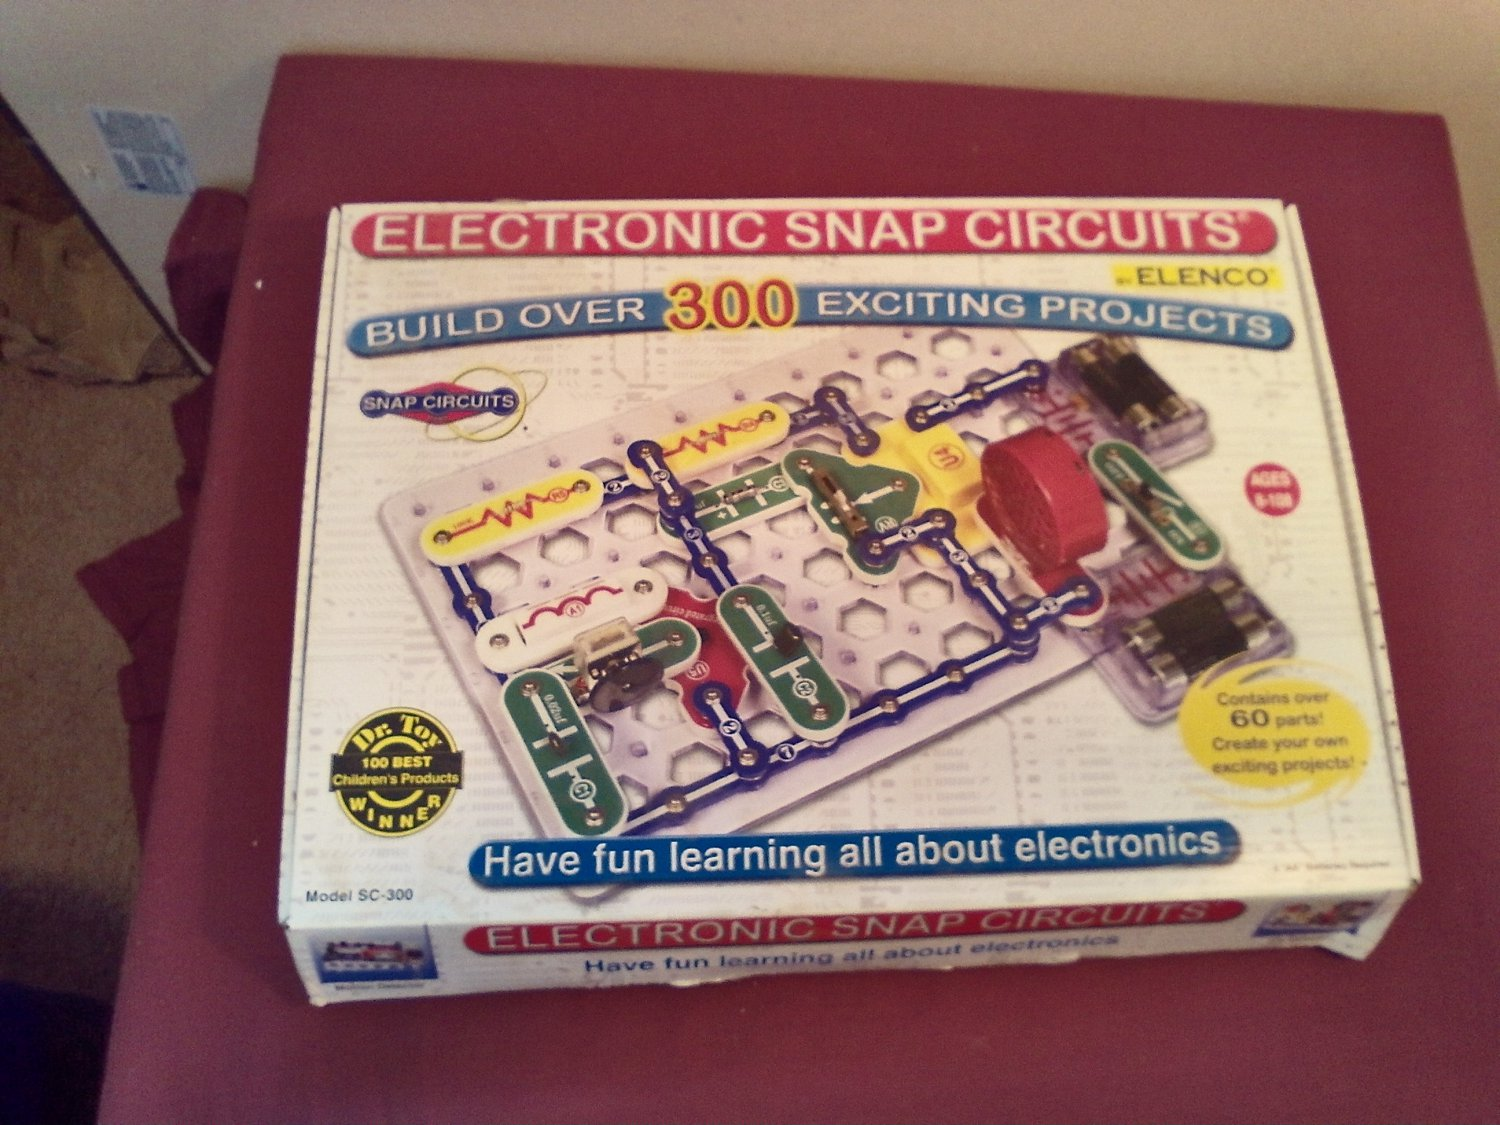 Electronic Snap Circuits 300 Experiments Sc Electricity Science R And Educational Toys Kit Toy By Elenco Mw